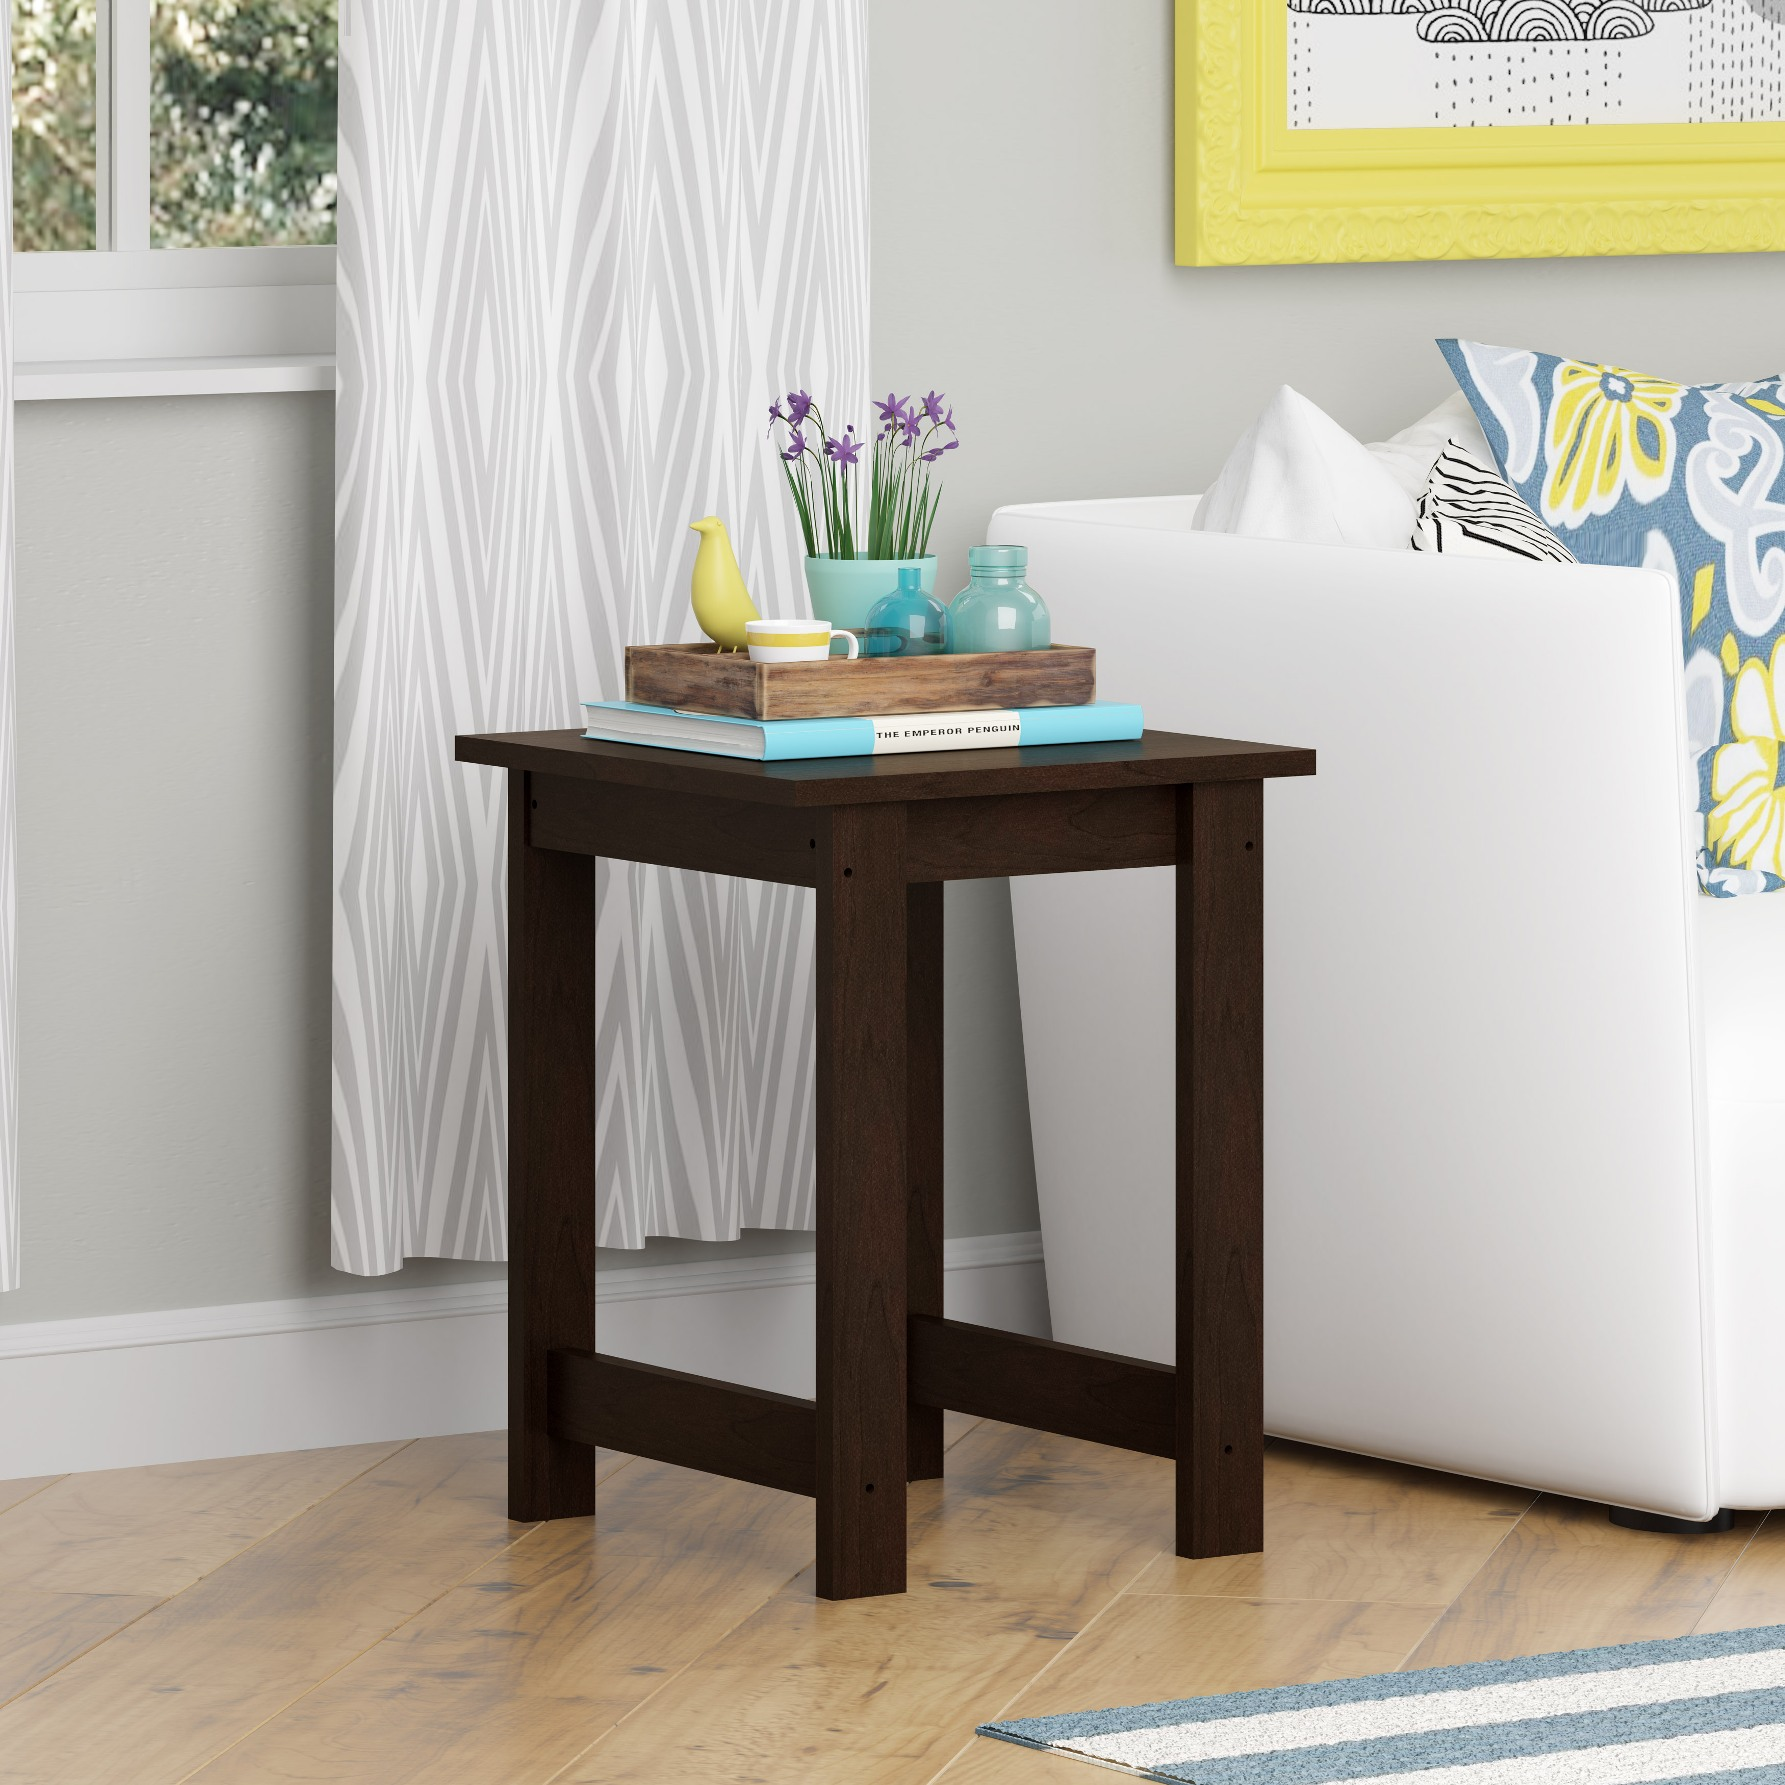 good side table cherry prod kmart furniture end tables outside patio raw wood kitchen skinny night small sitting room thomasville quality coffee with wheels ashley rancho